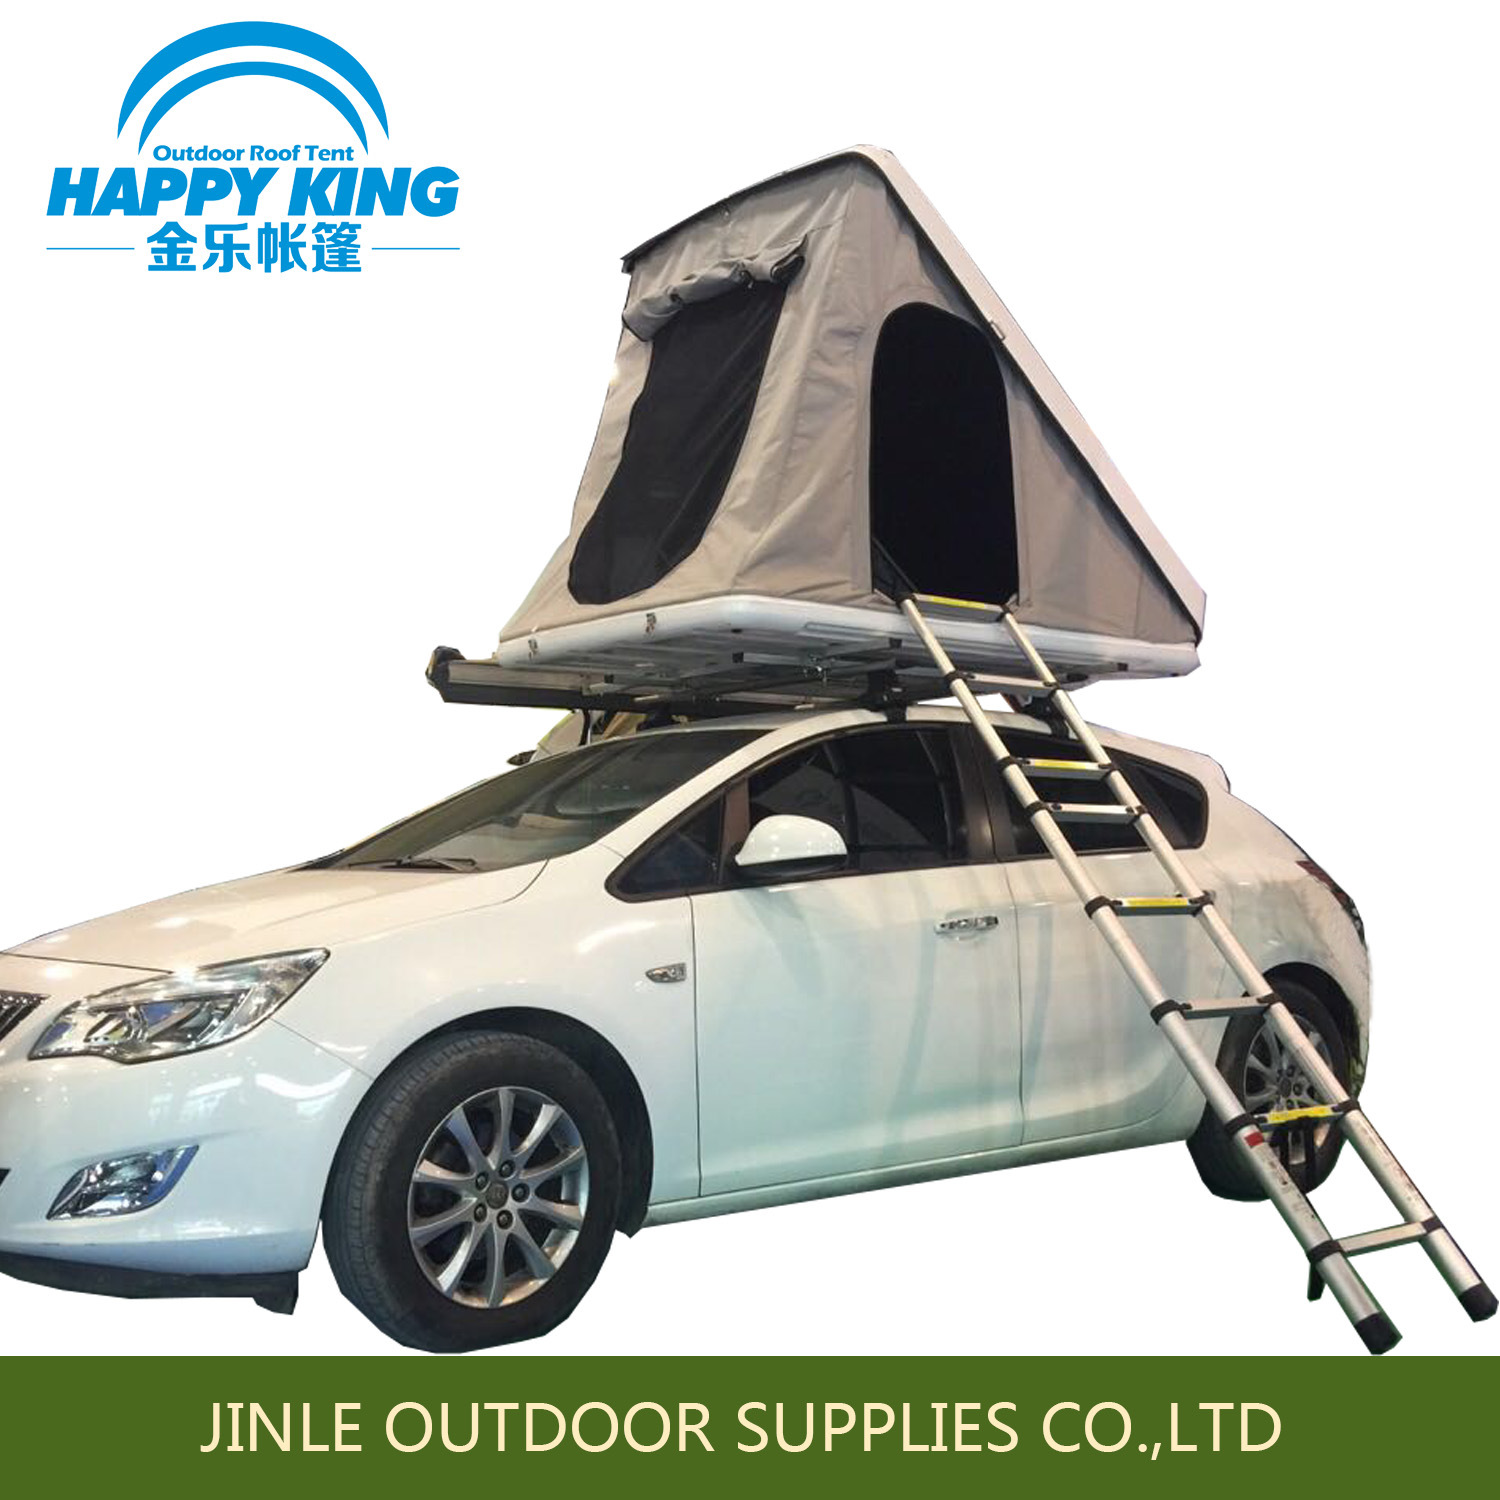 New Hard Shell Roof Top Tent Factory Price